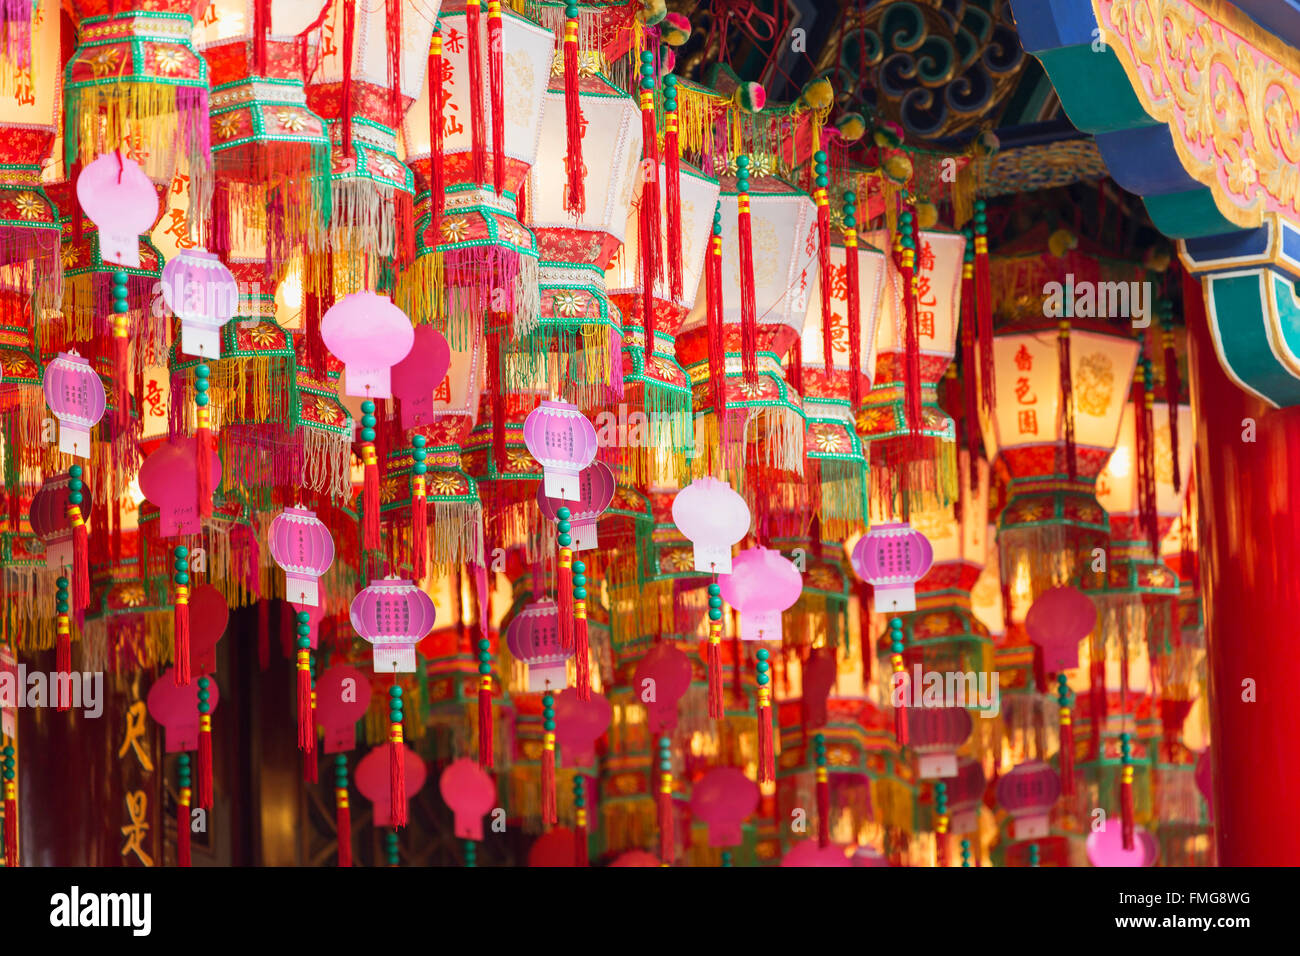 Lanterns at Wong Tai Sin Temple, Wong Tai Sin, Kowloon, Hong Kong, China - Stock Image